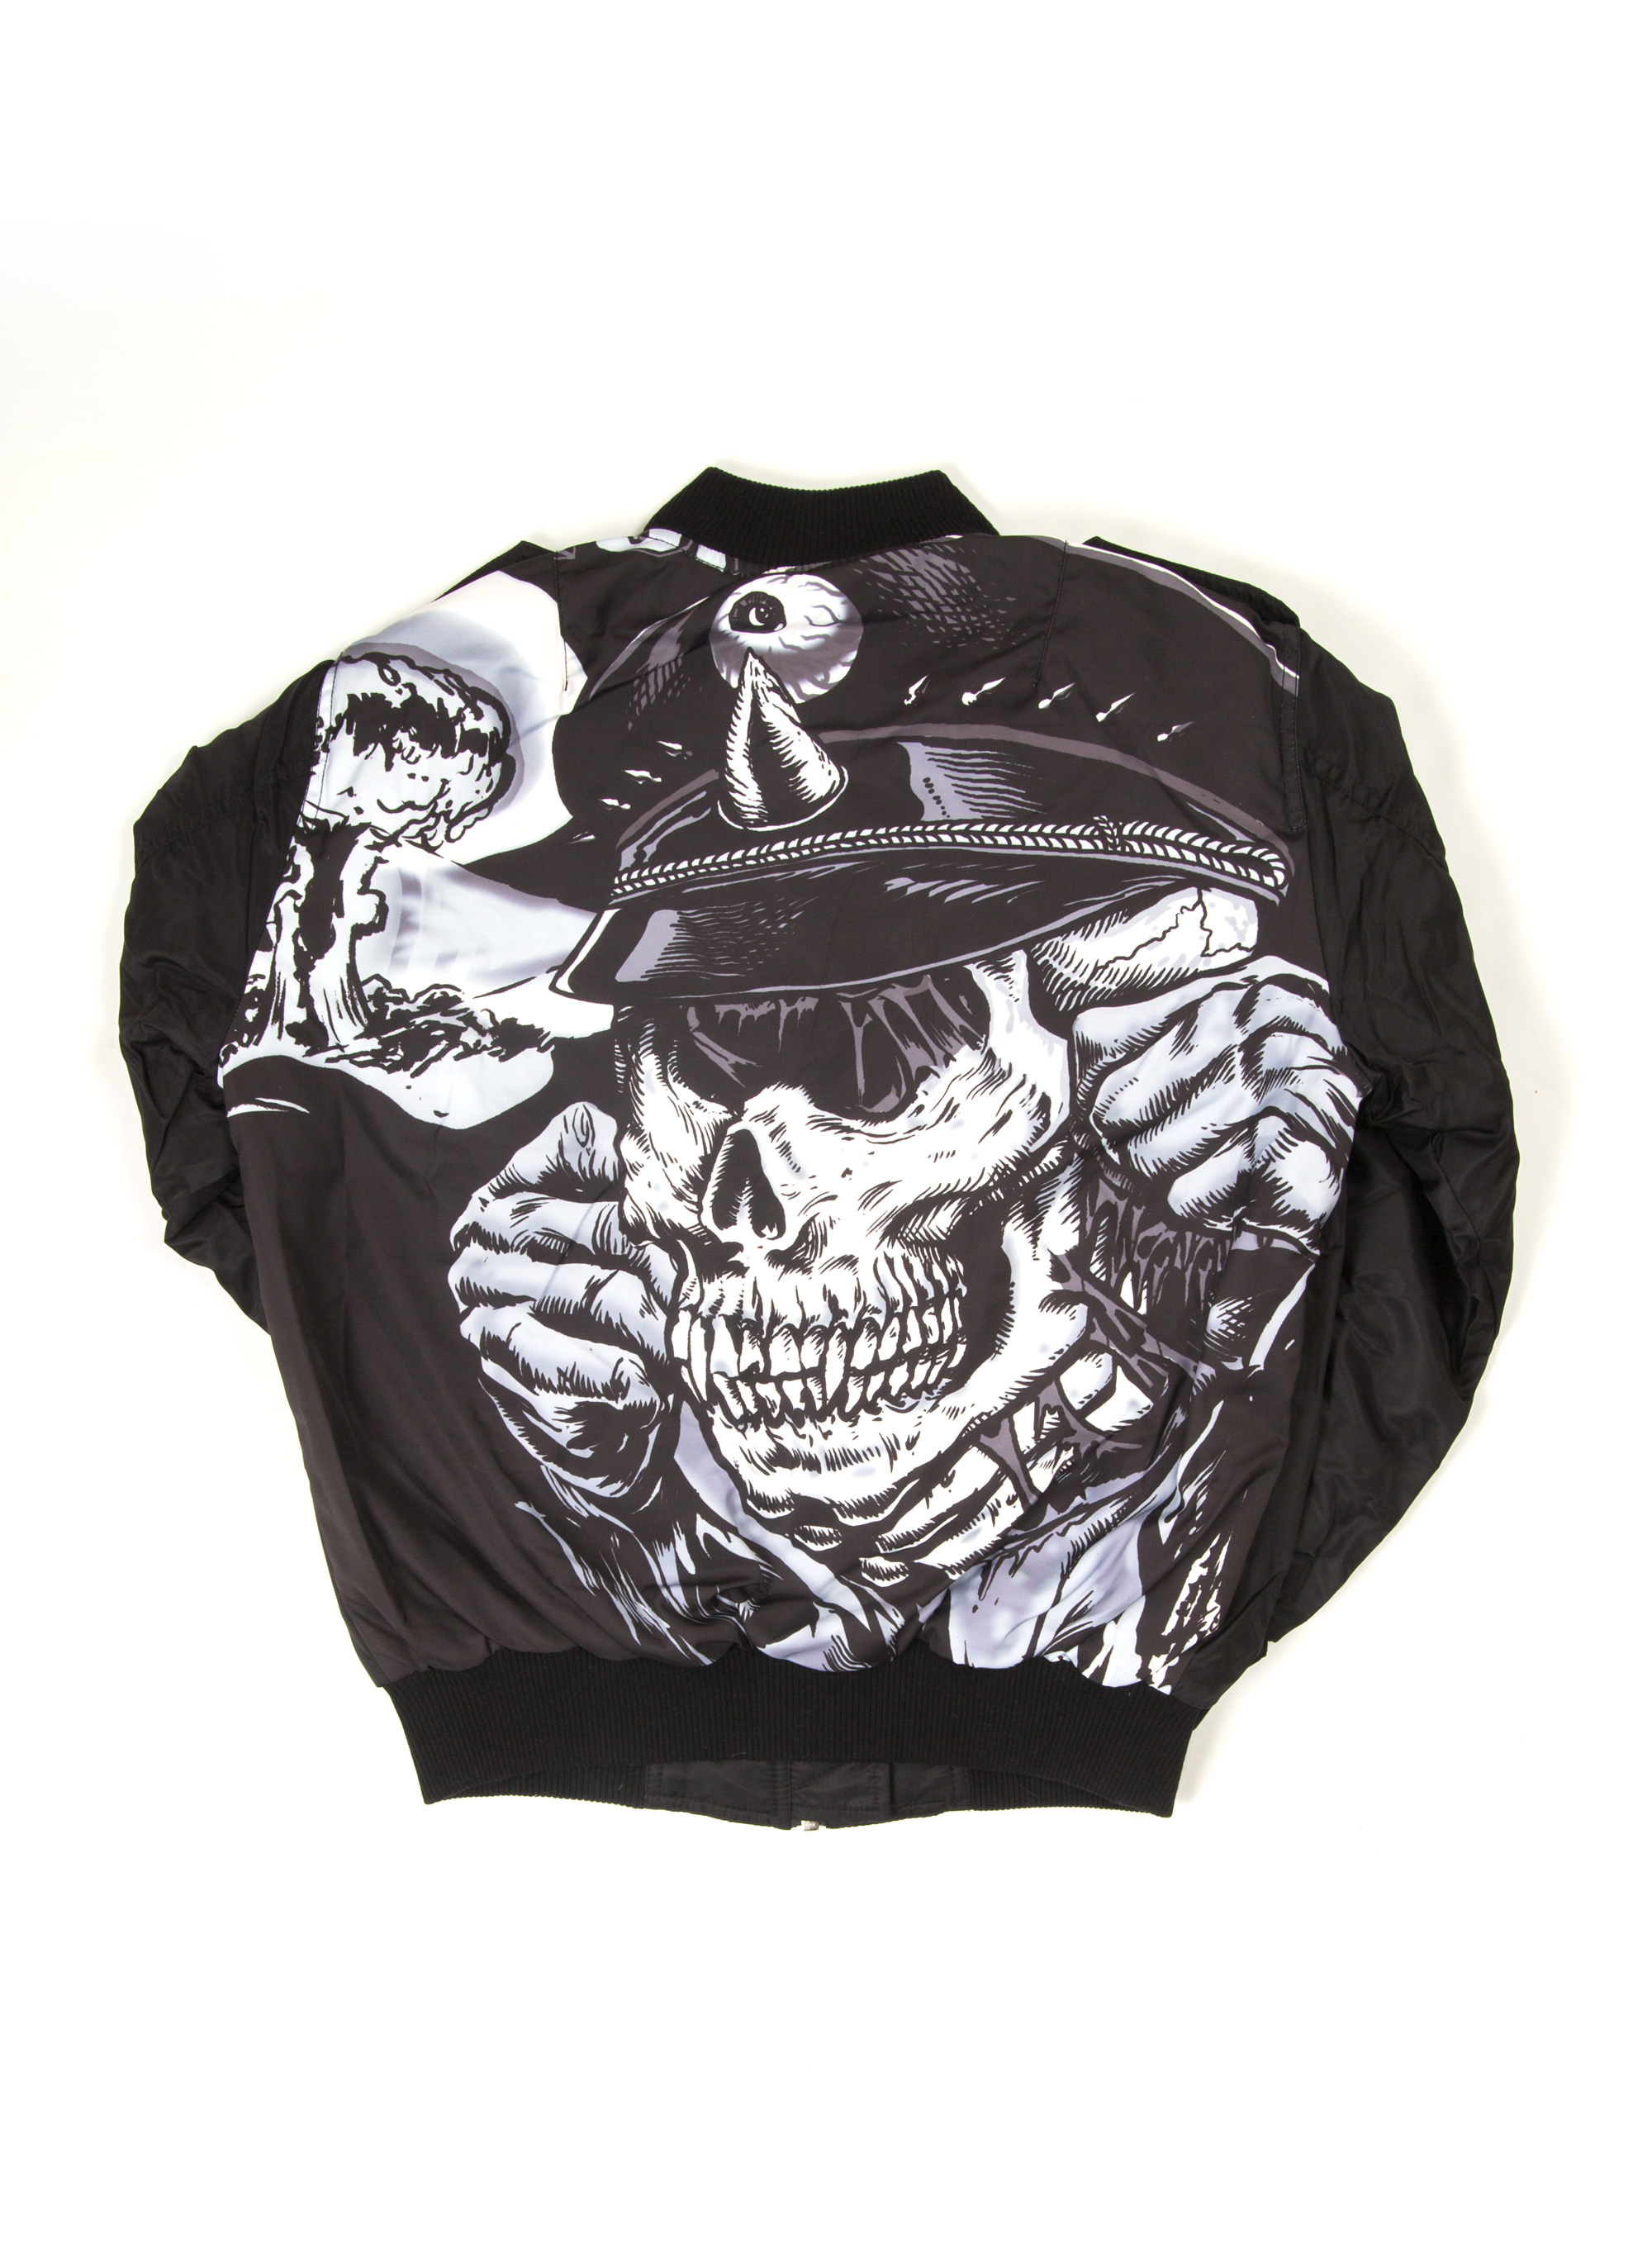 Lamour Espionage Jacket